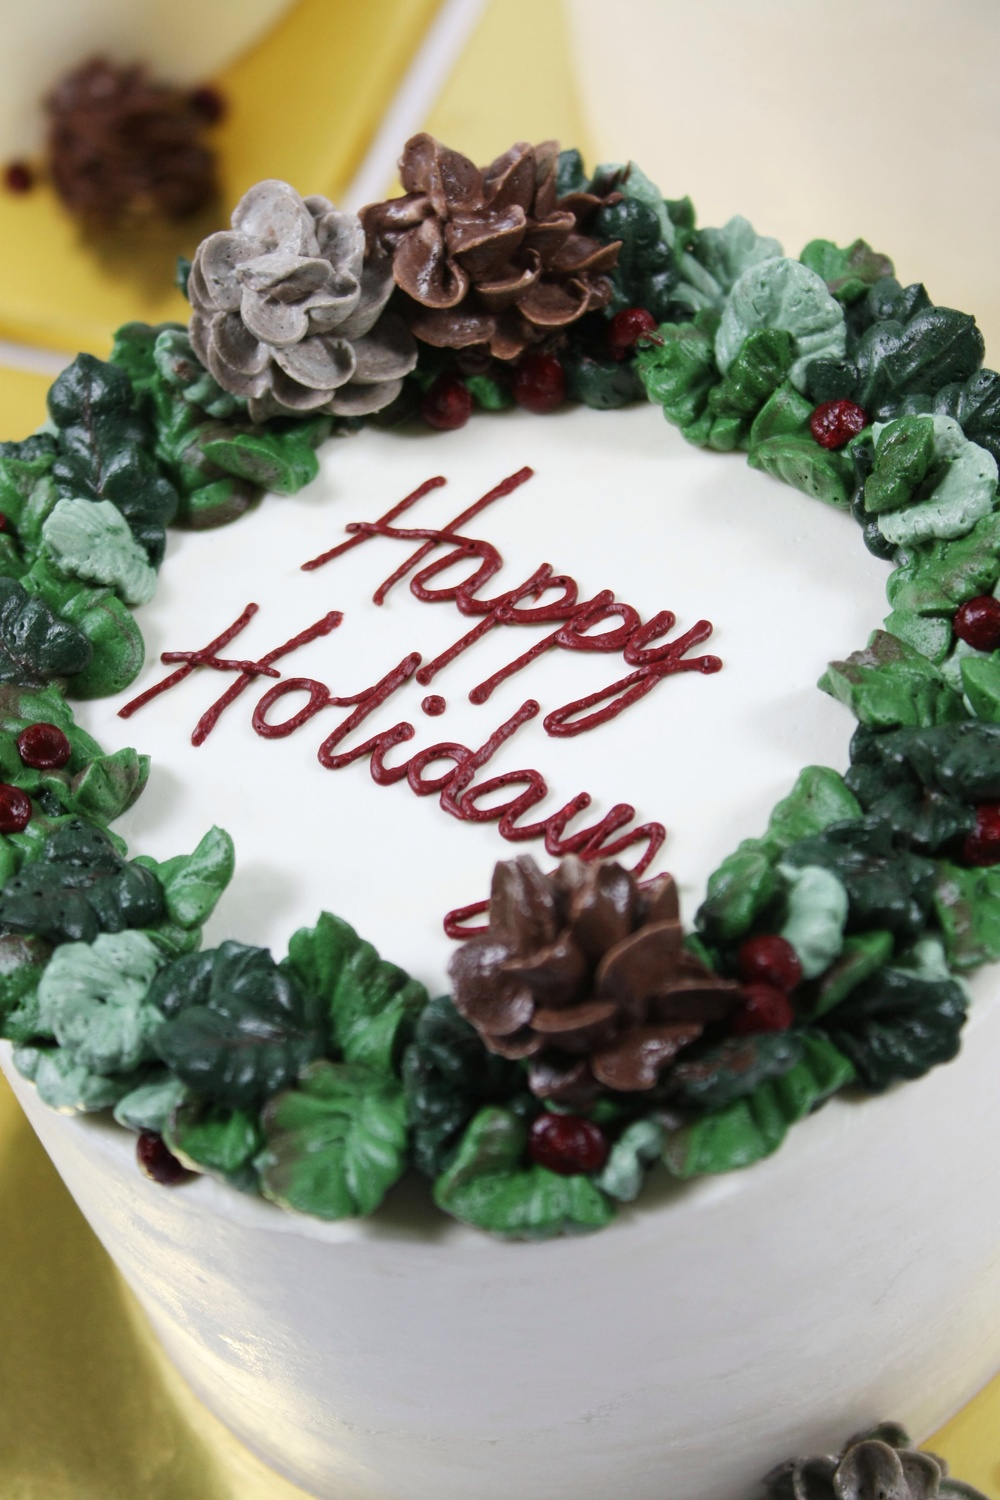 Christmas Cake Decorating With Buttercream : Merry Christmas - 2014 Holiday buttercream cakes   Eat ...